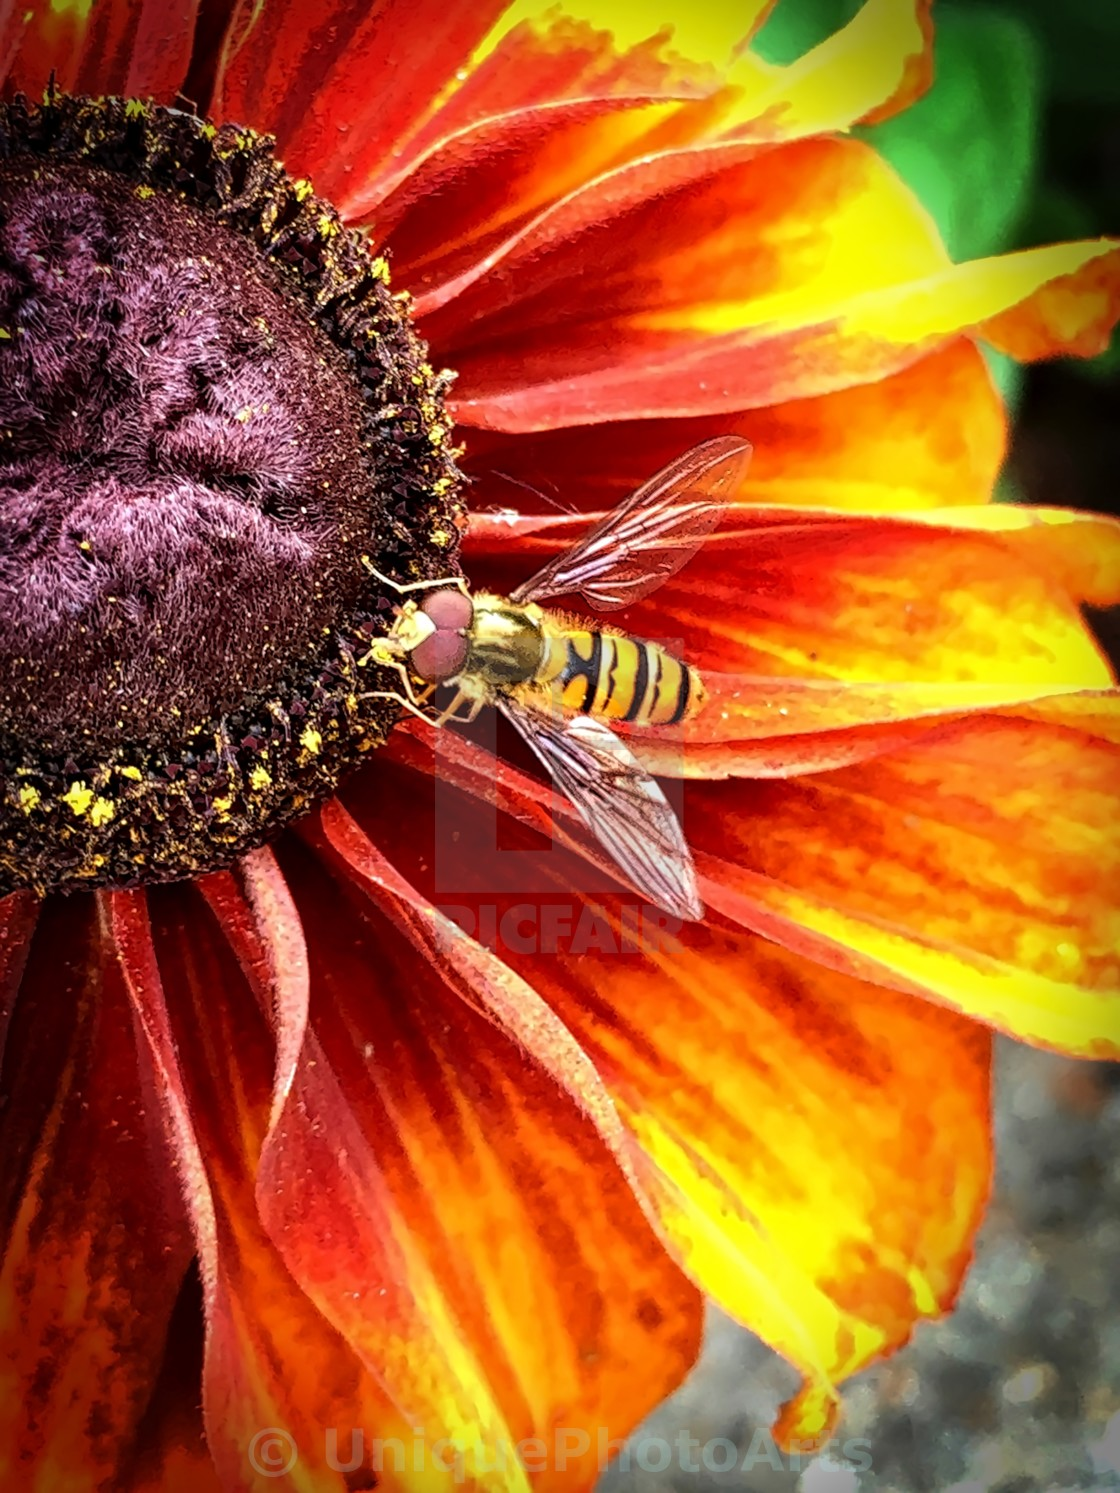 """Hoverfly on a vibrant flower"" stock image"